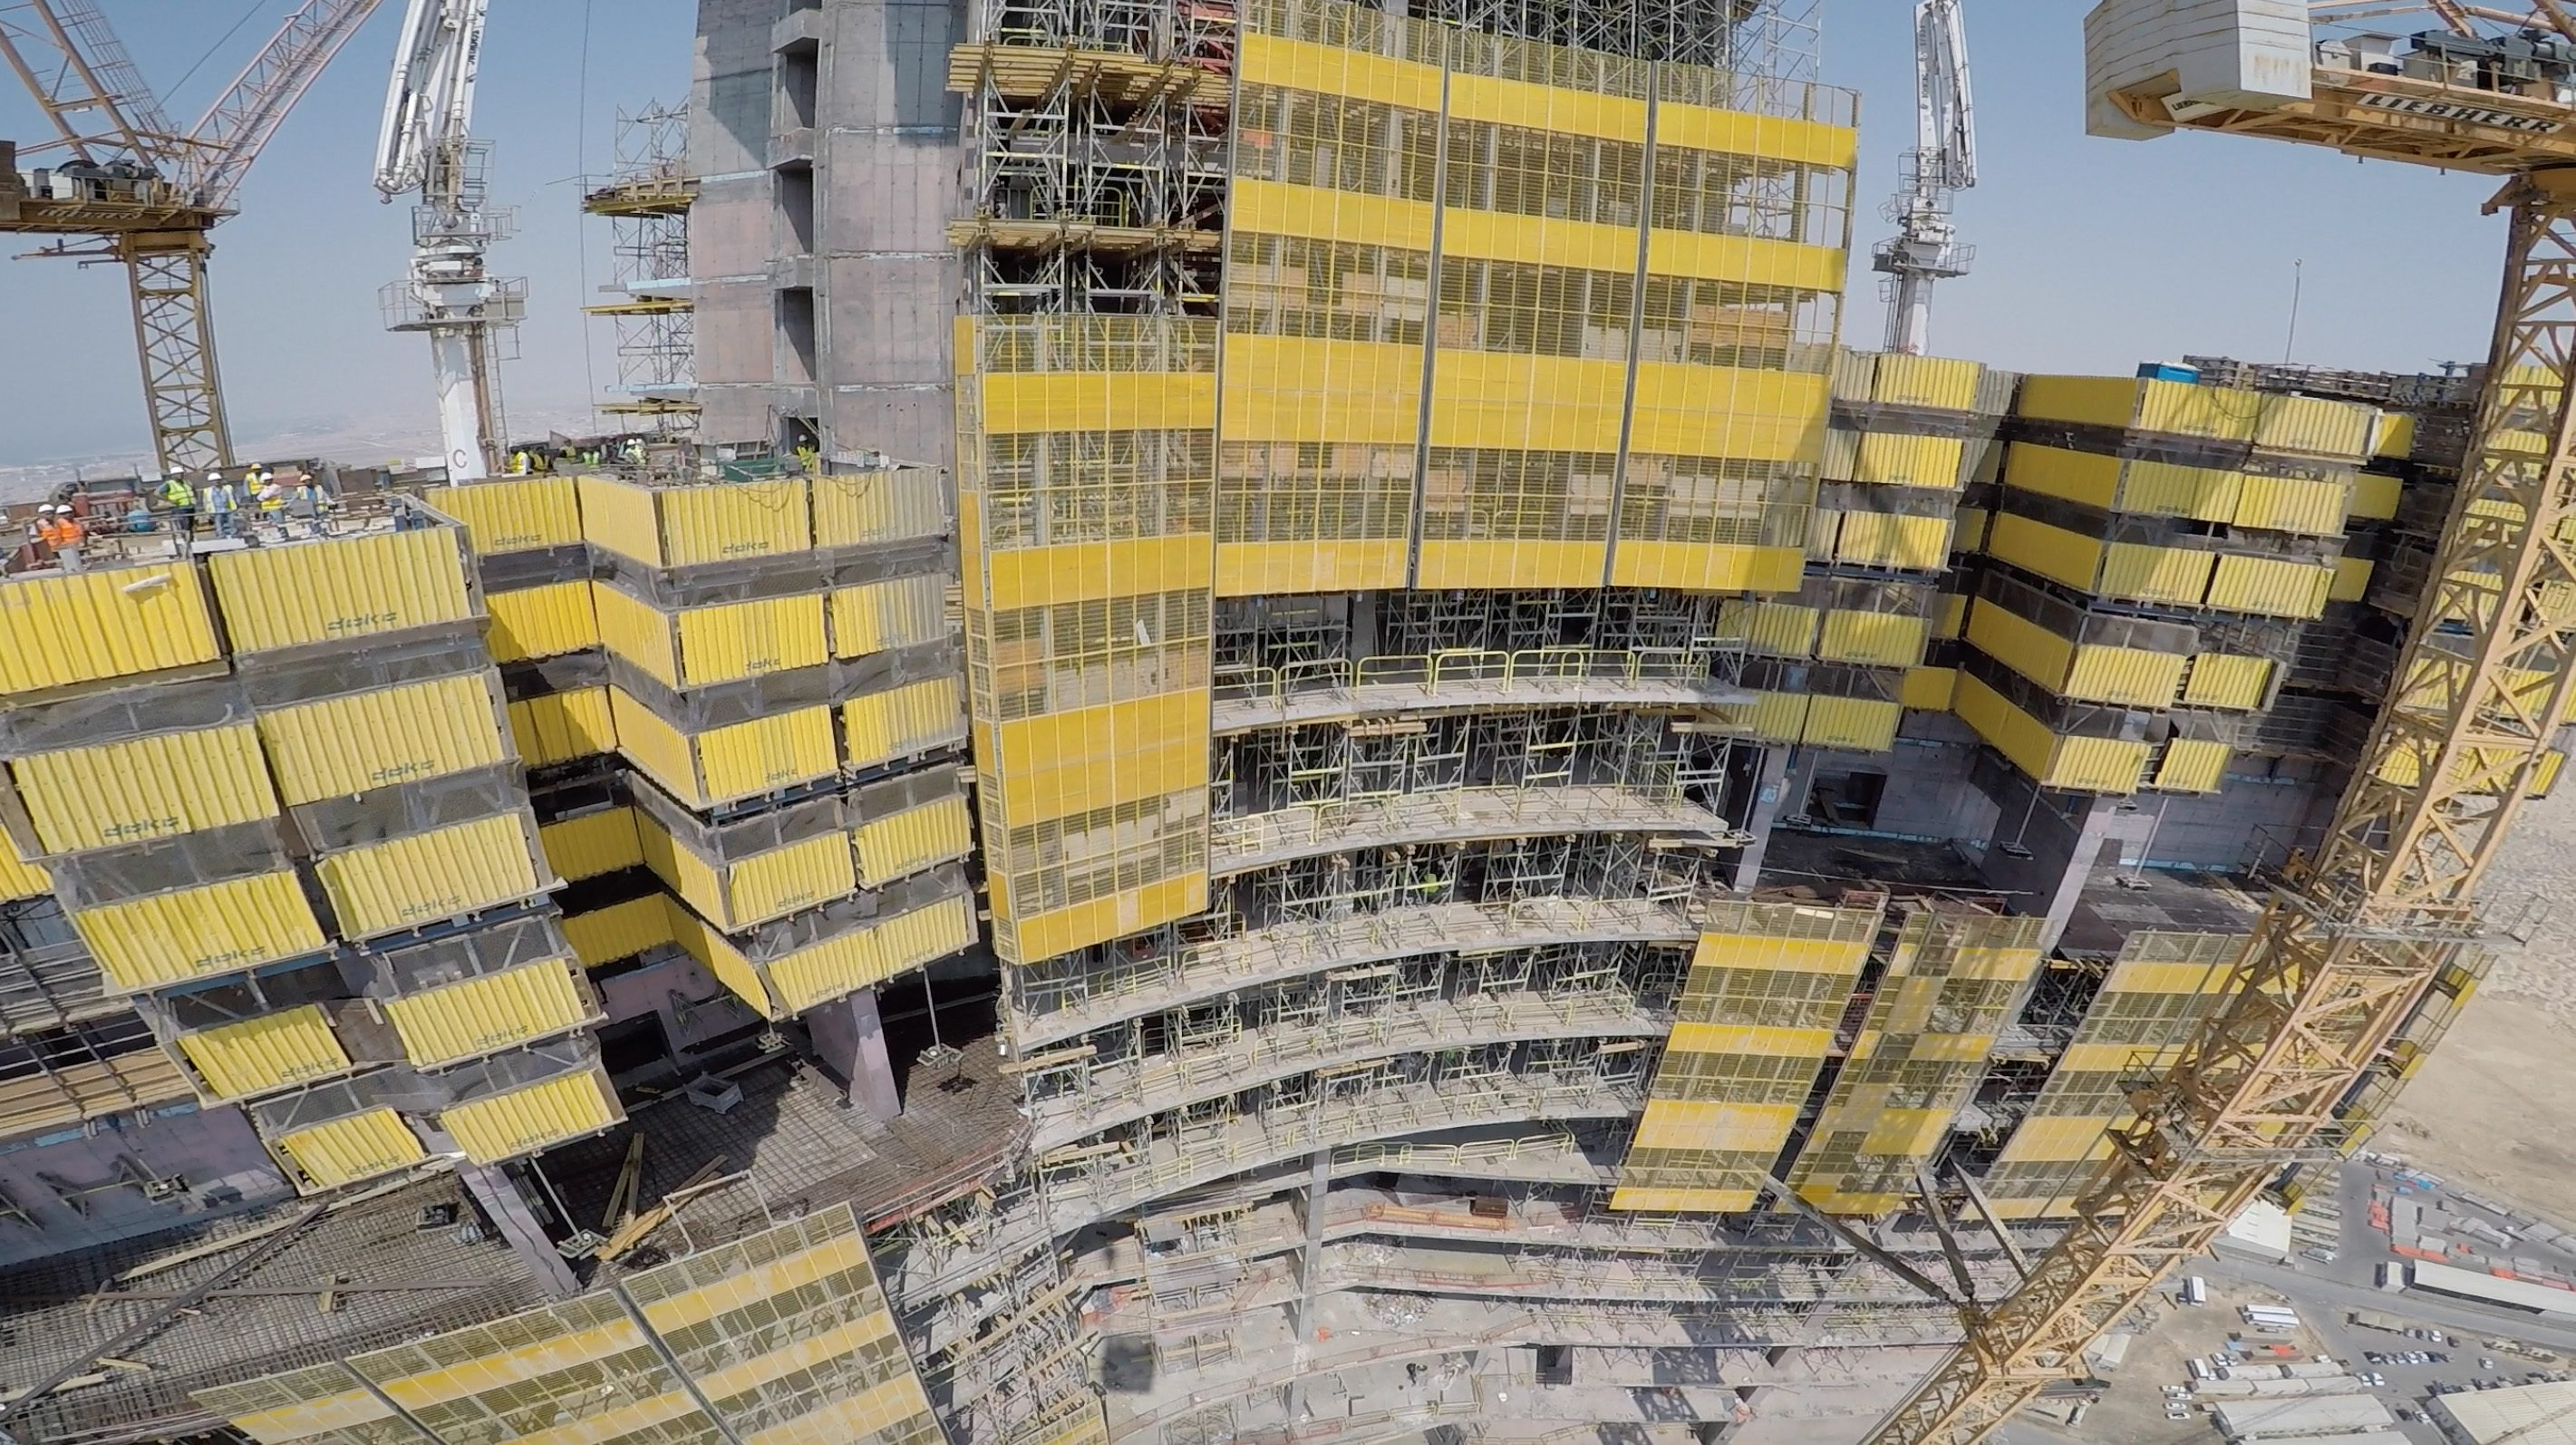 Saudi Arabia to build world's tallest building 1km tall - CNN Style